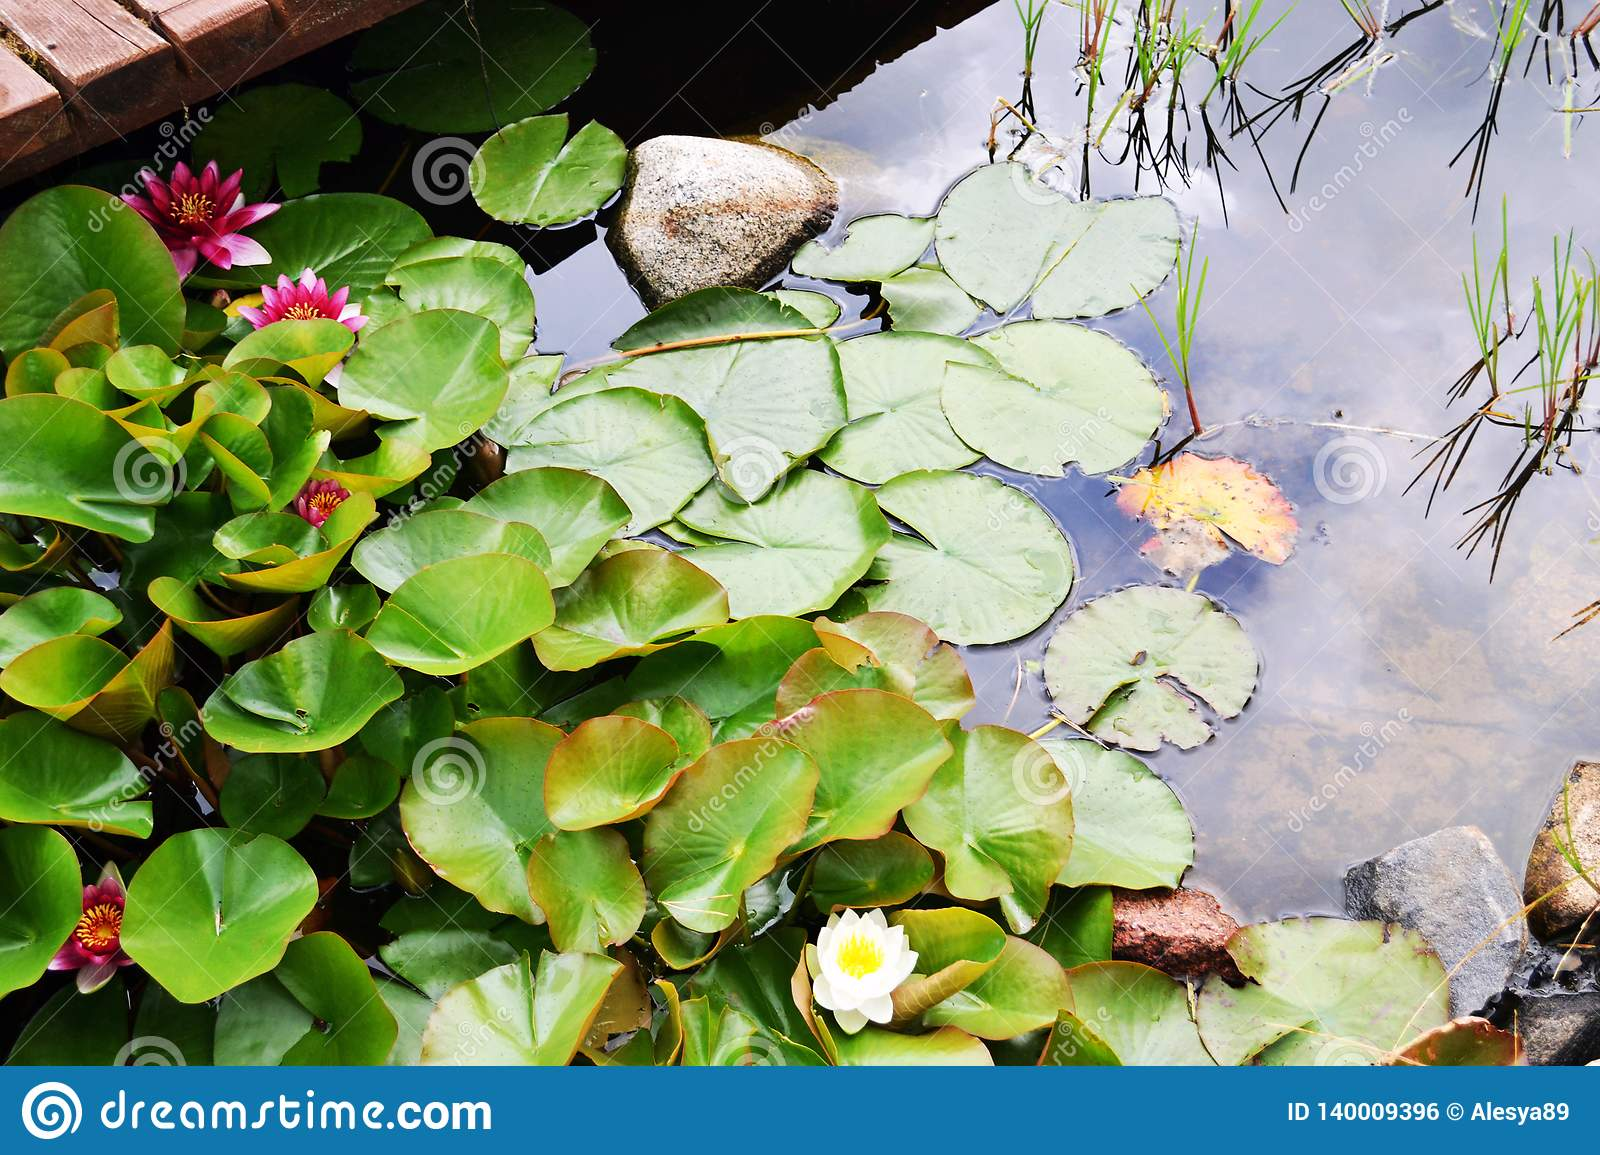 Red and white water lilies floating on the water with green leaves in the shape of hearts near the platform